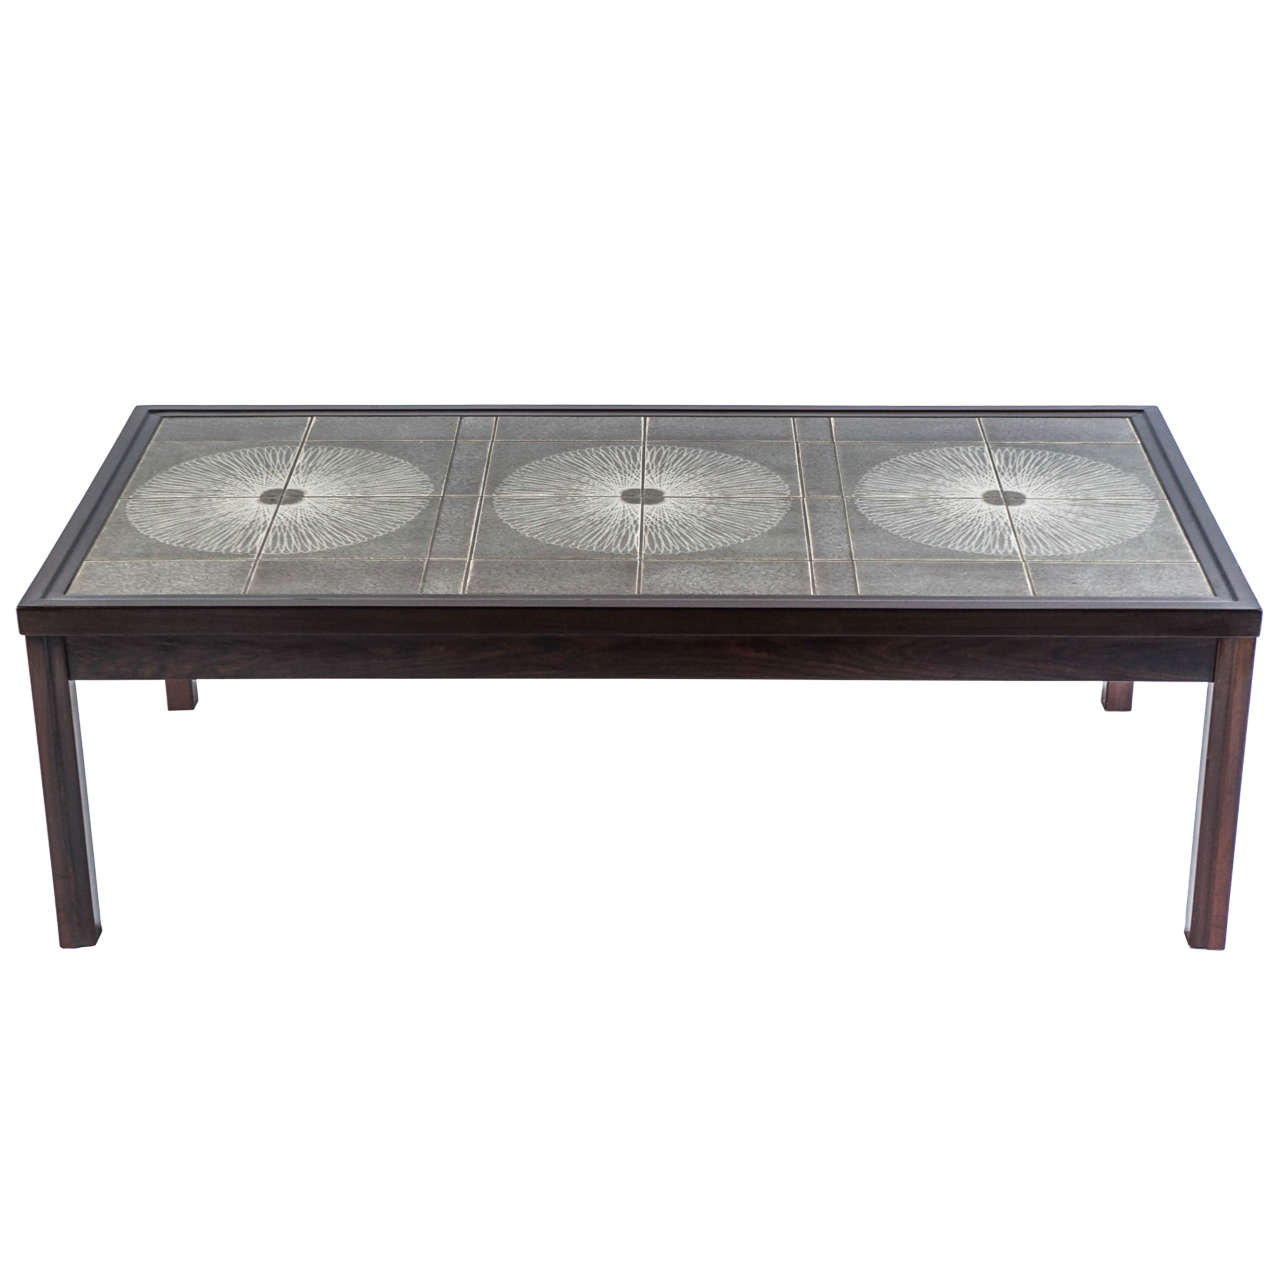 Danish tile top coffee table in the style of roger capron for Tile coffee table